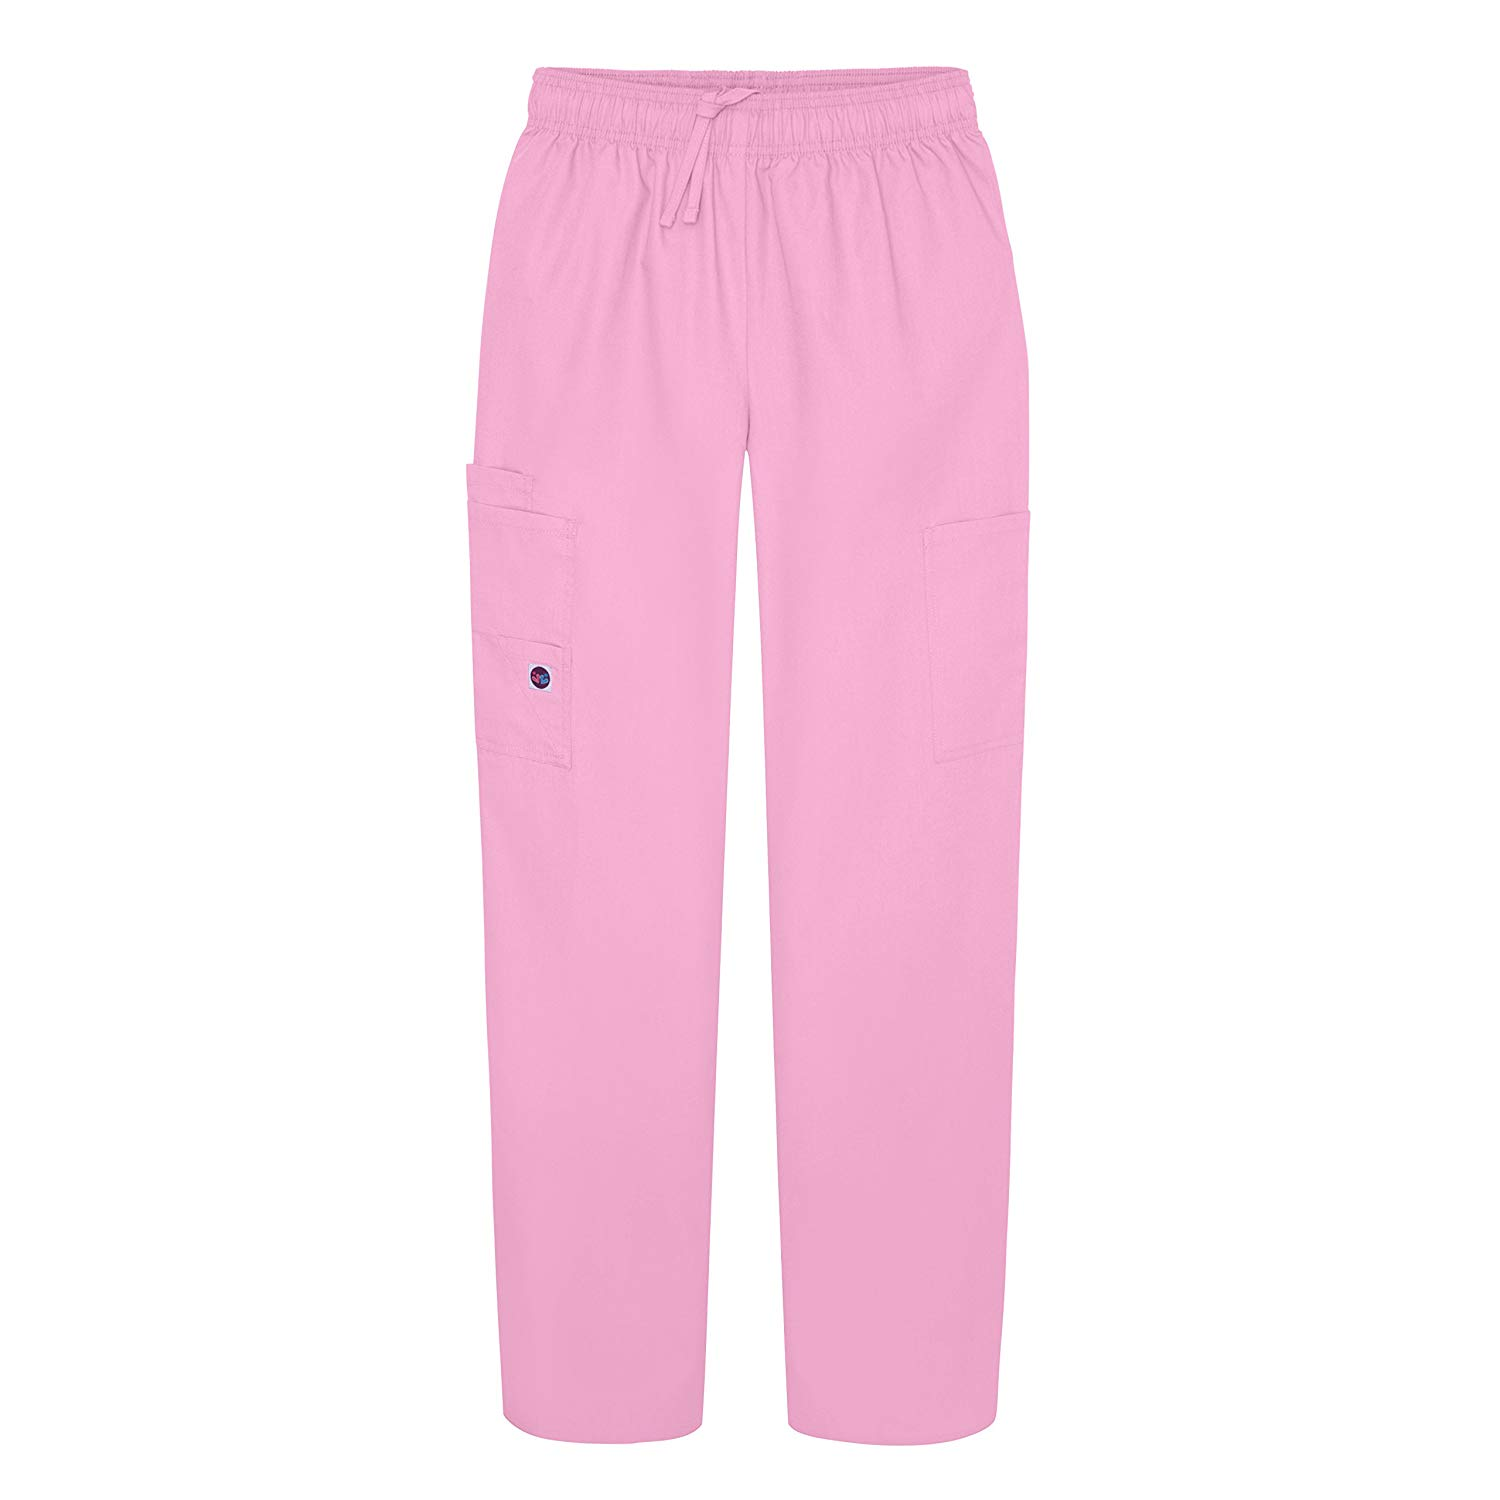 25 Pieces  Women's Scrubs Drawstring Cargo Pants (Available In 12 Colors) Cargo Pants  Overalls